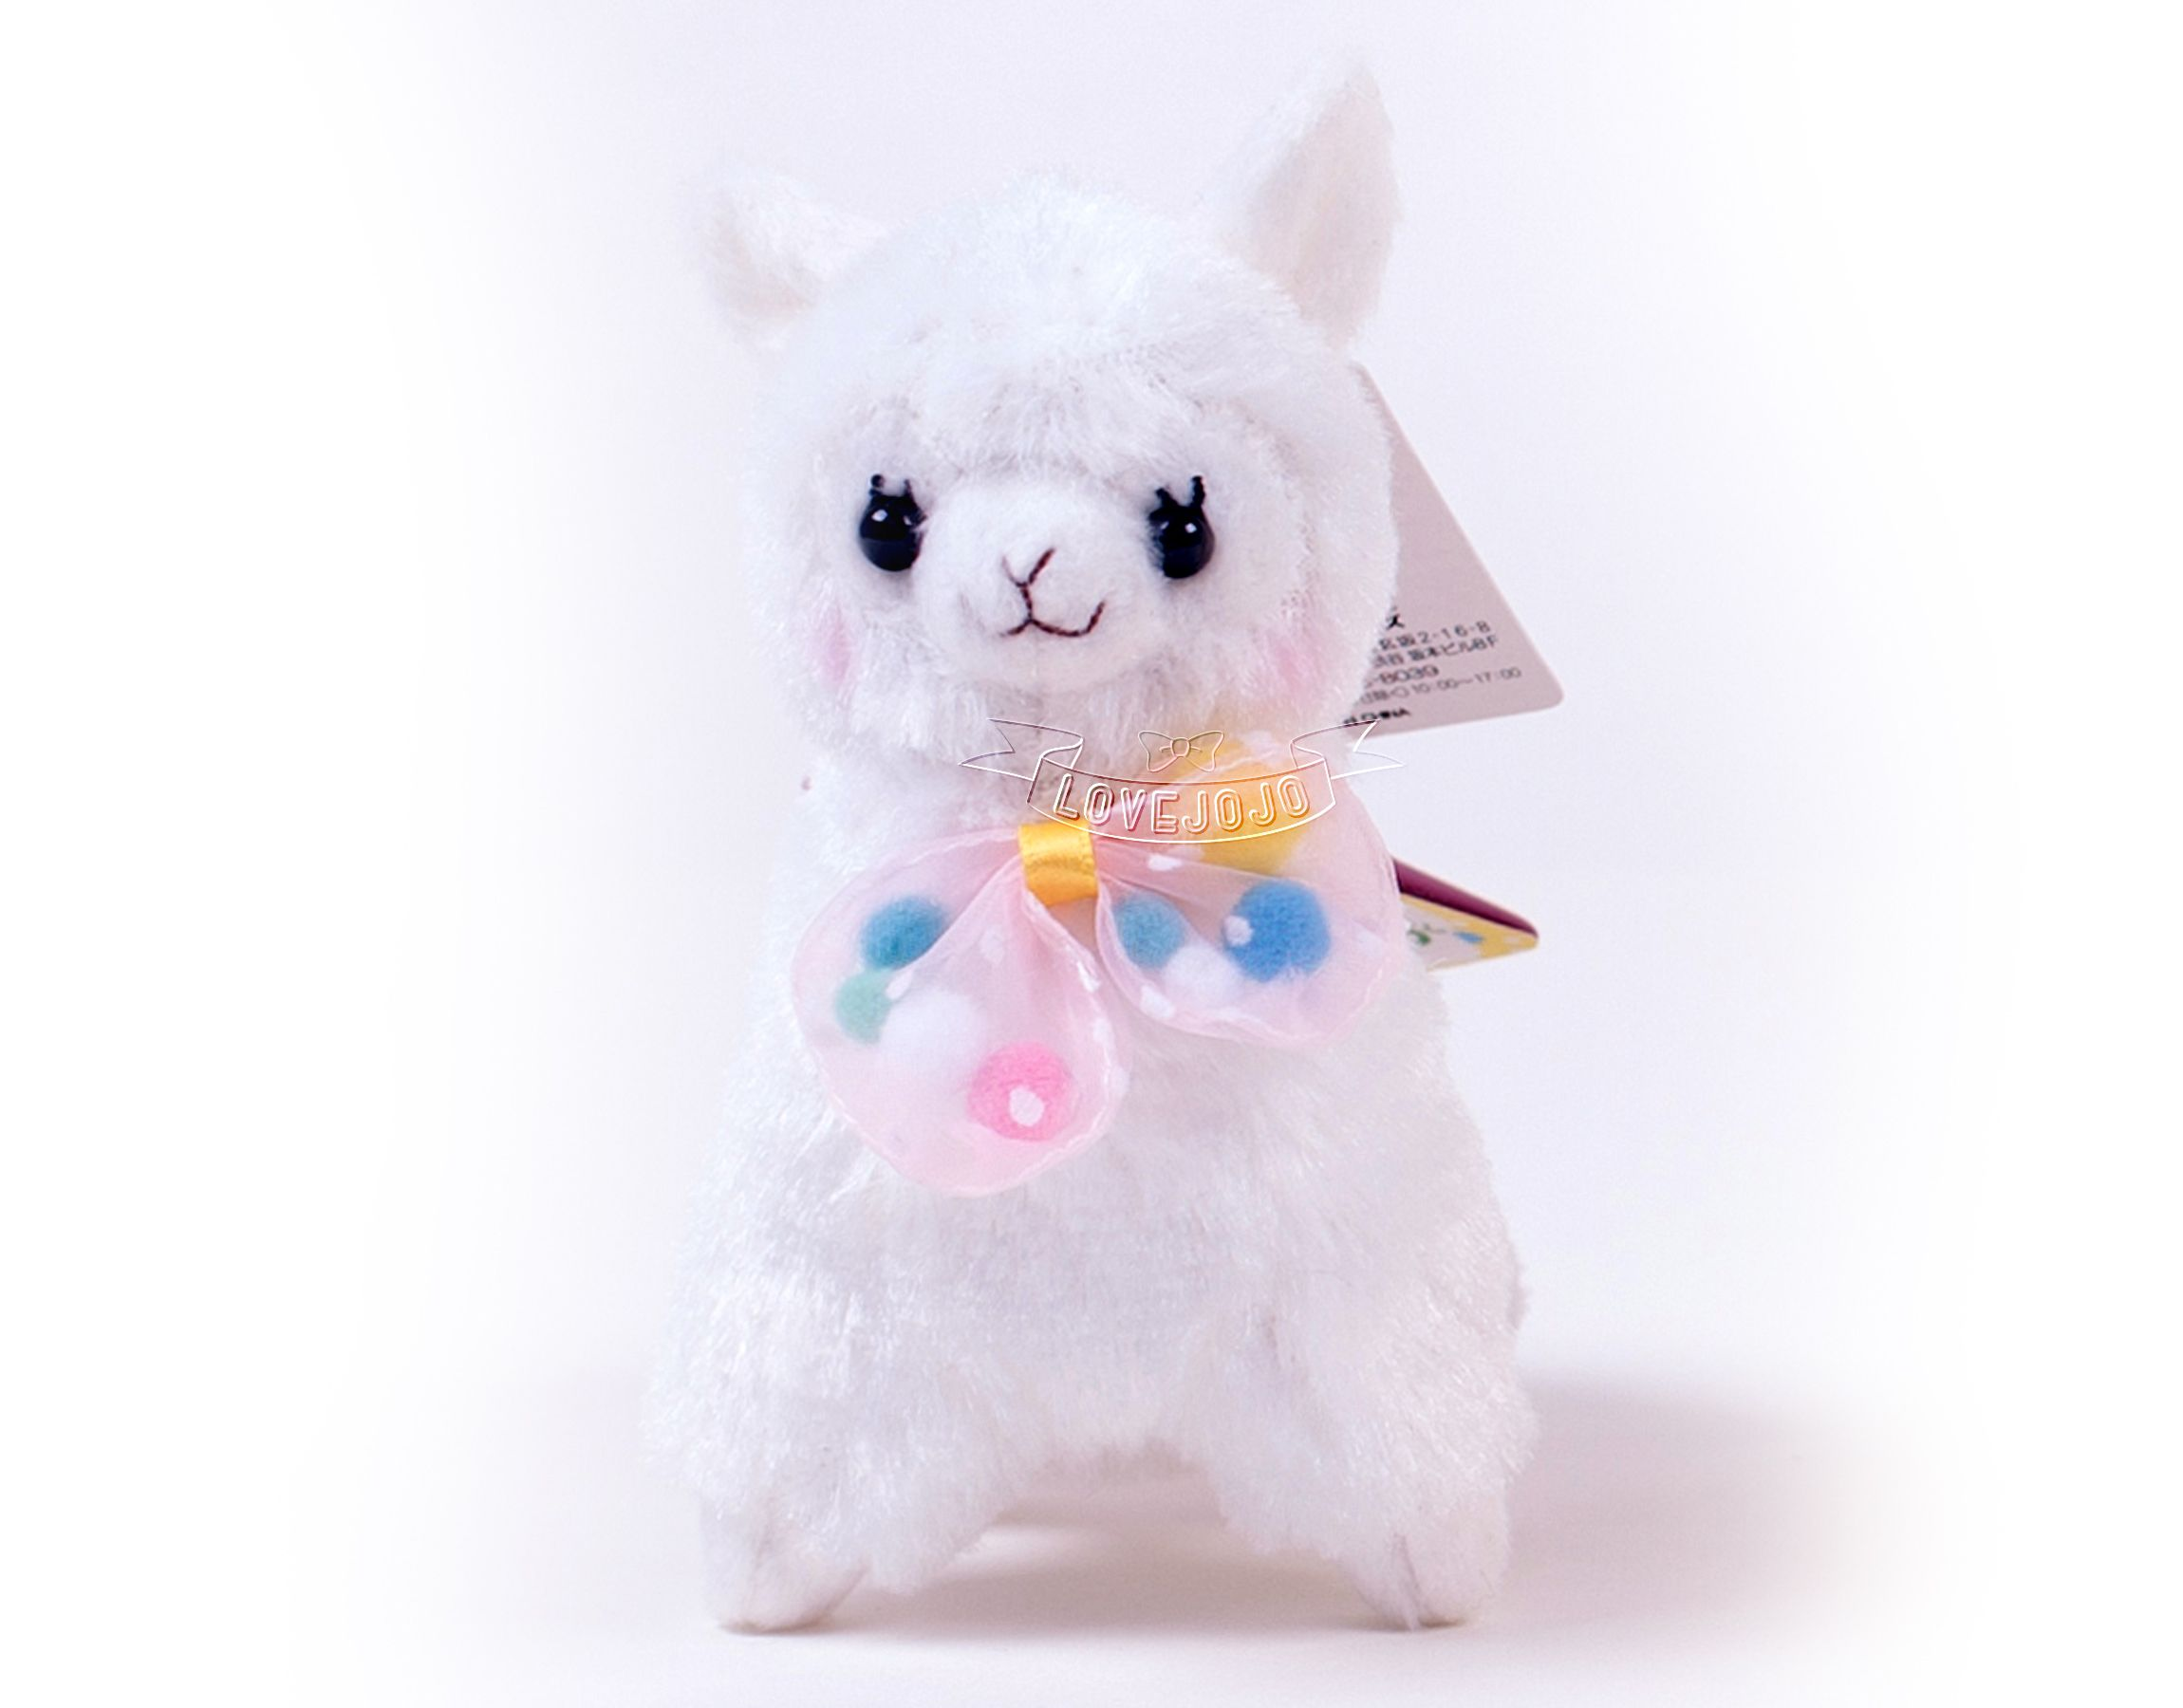 Alpacasso Pop N Ribbon Series 12cm Plush | LoveJojo.com